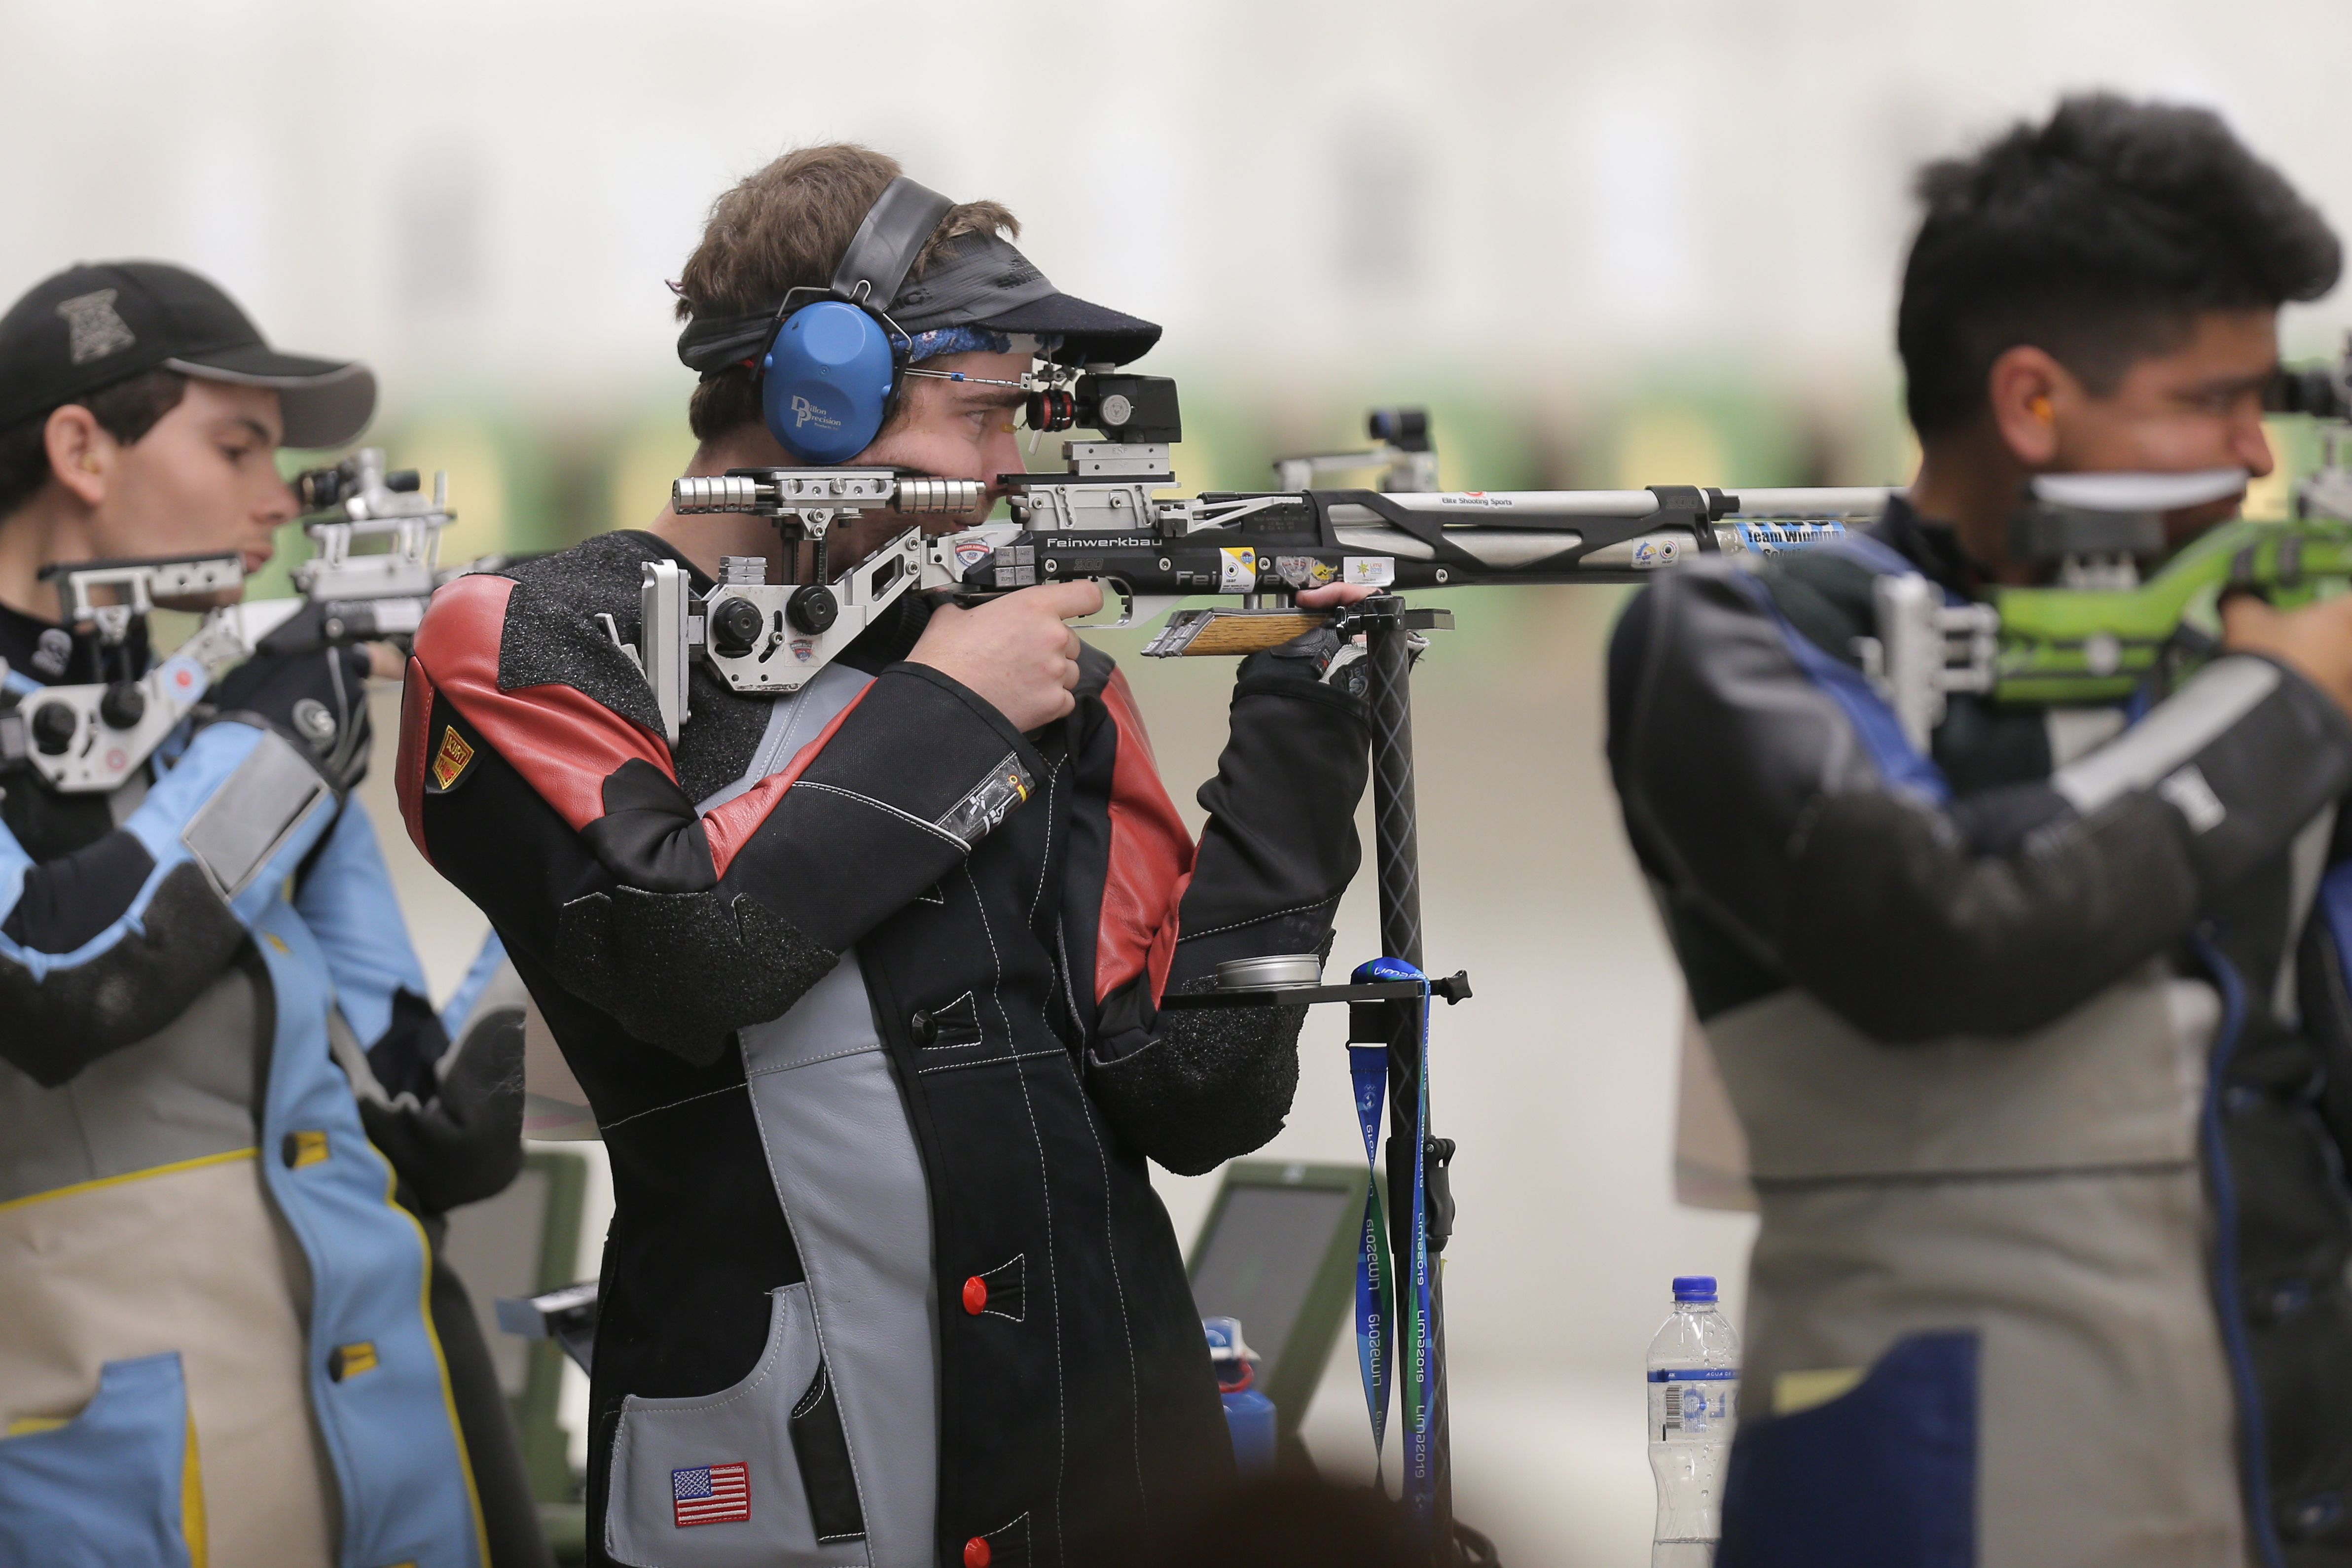 Lucas Kozeniesky, center, competes in the Men's 10m Air Rifle shooting competition during the Lima 2019 Pan-American Games.